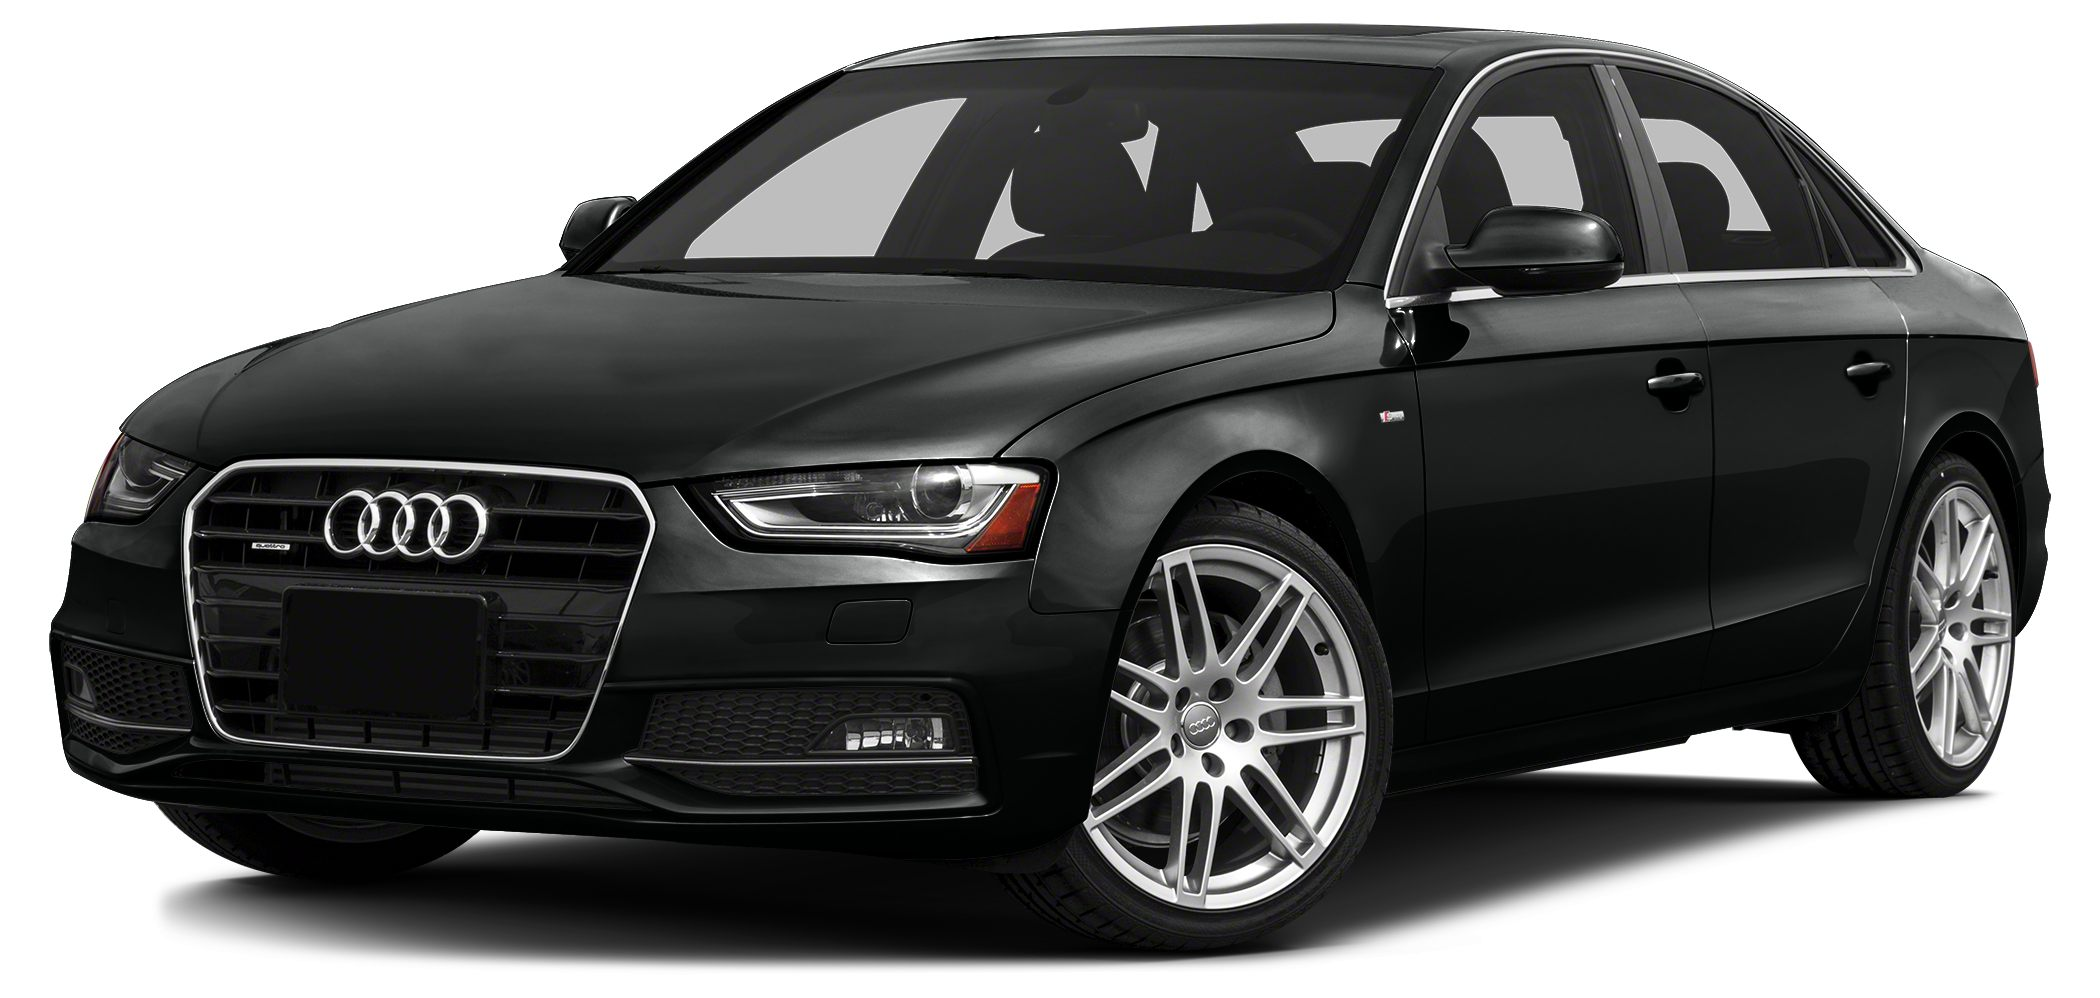 2016 Audi A4 20T quattro Premium 1 OWNER S LINE and AWD 8-Speed Automatic with Tip